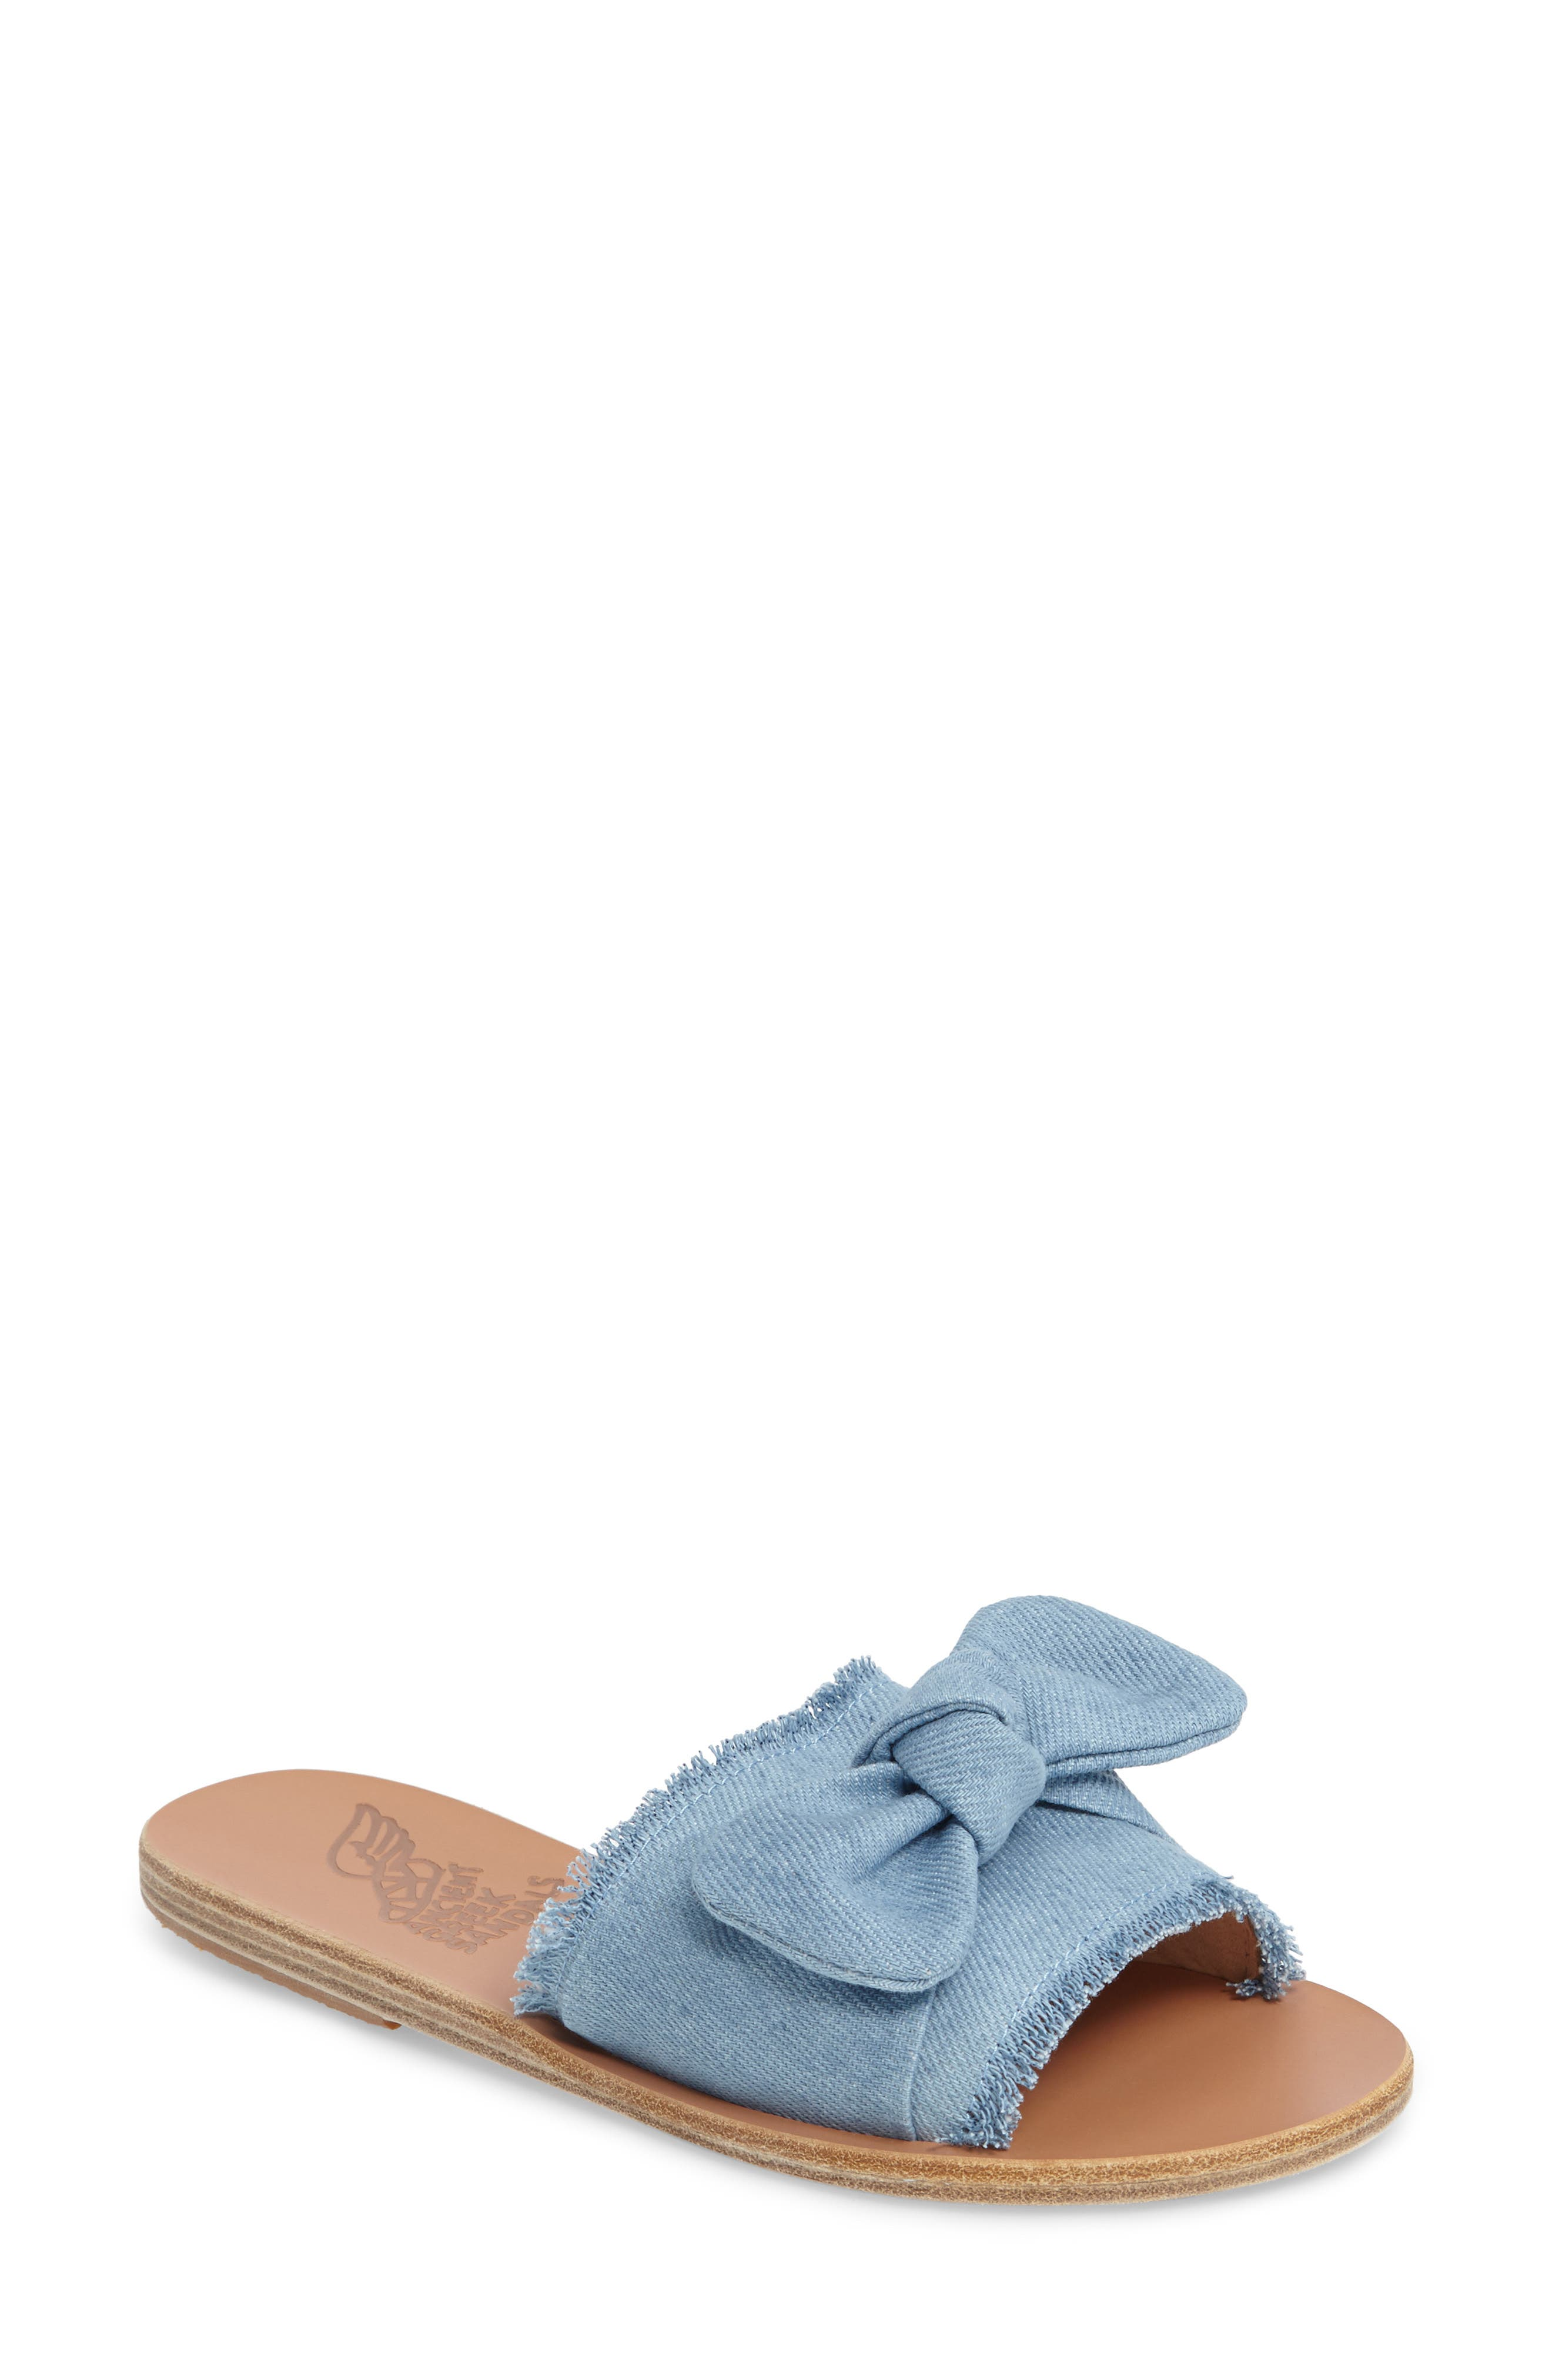 Taygete Bow Slide Sandal,                             Main thumbnail 2, color,